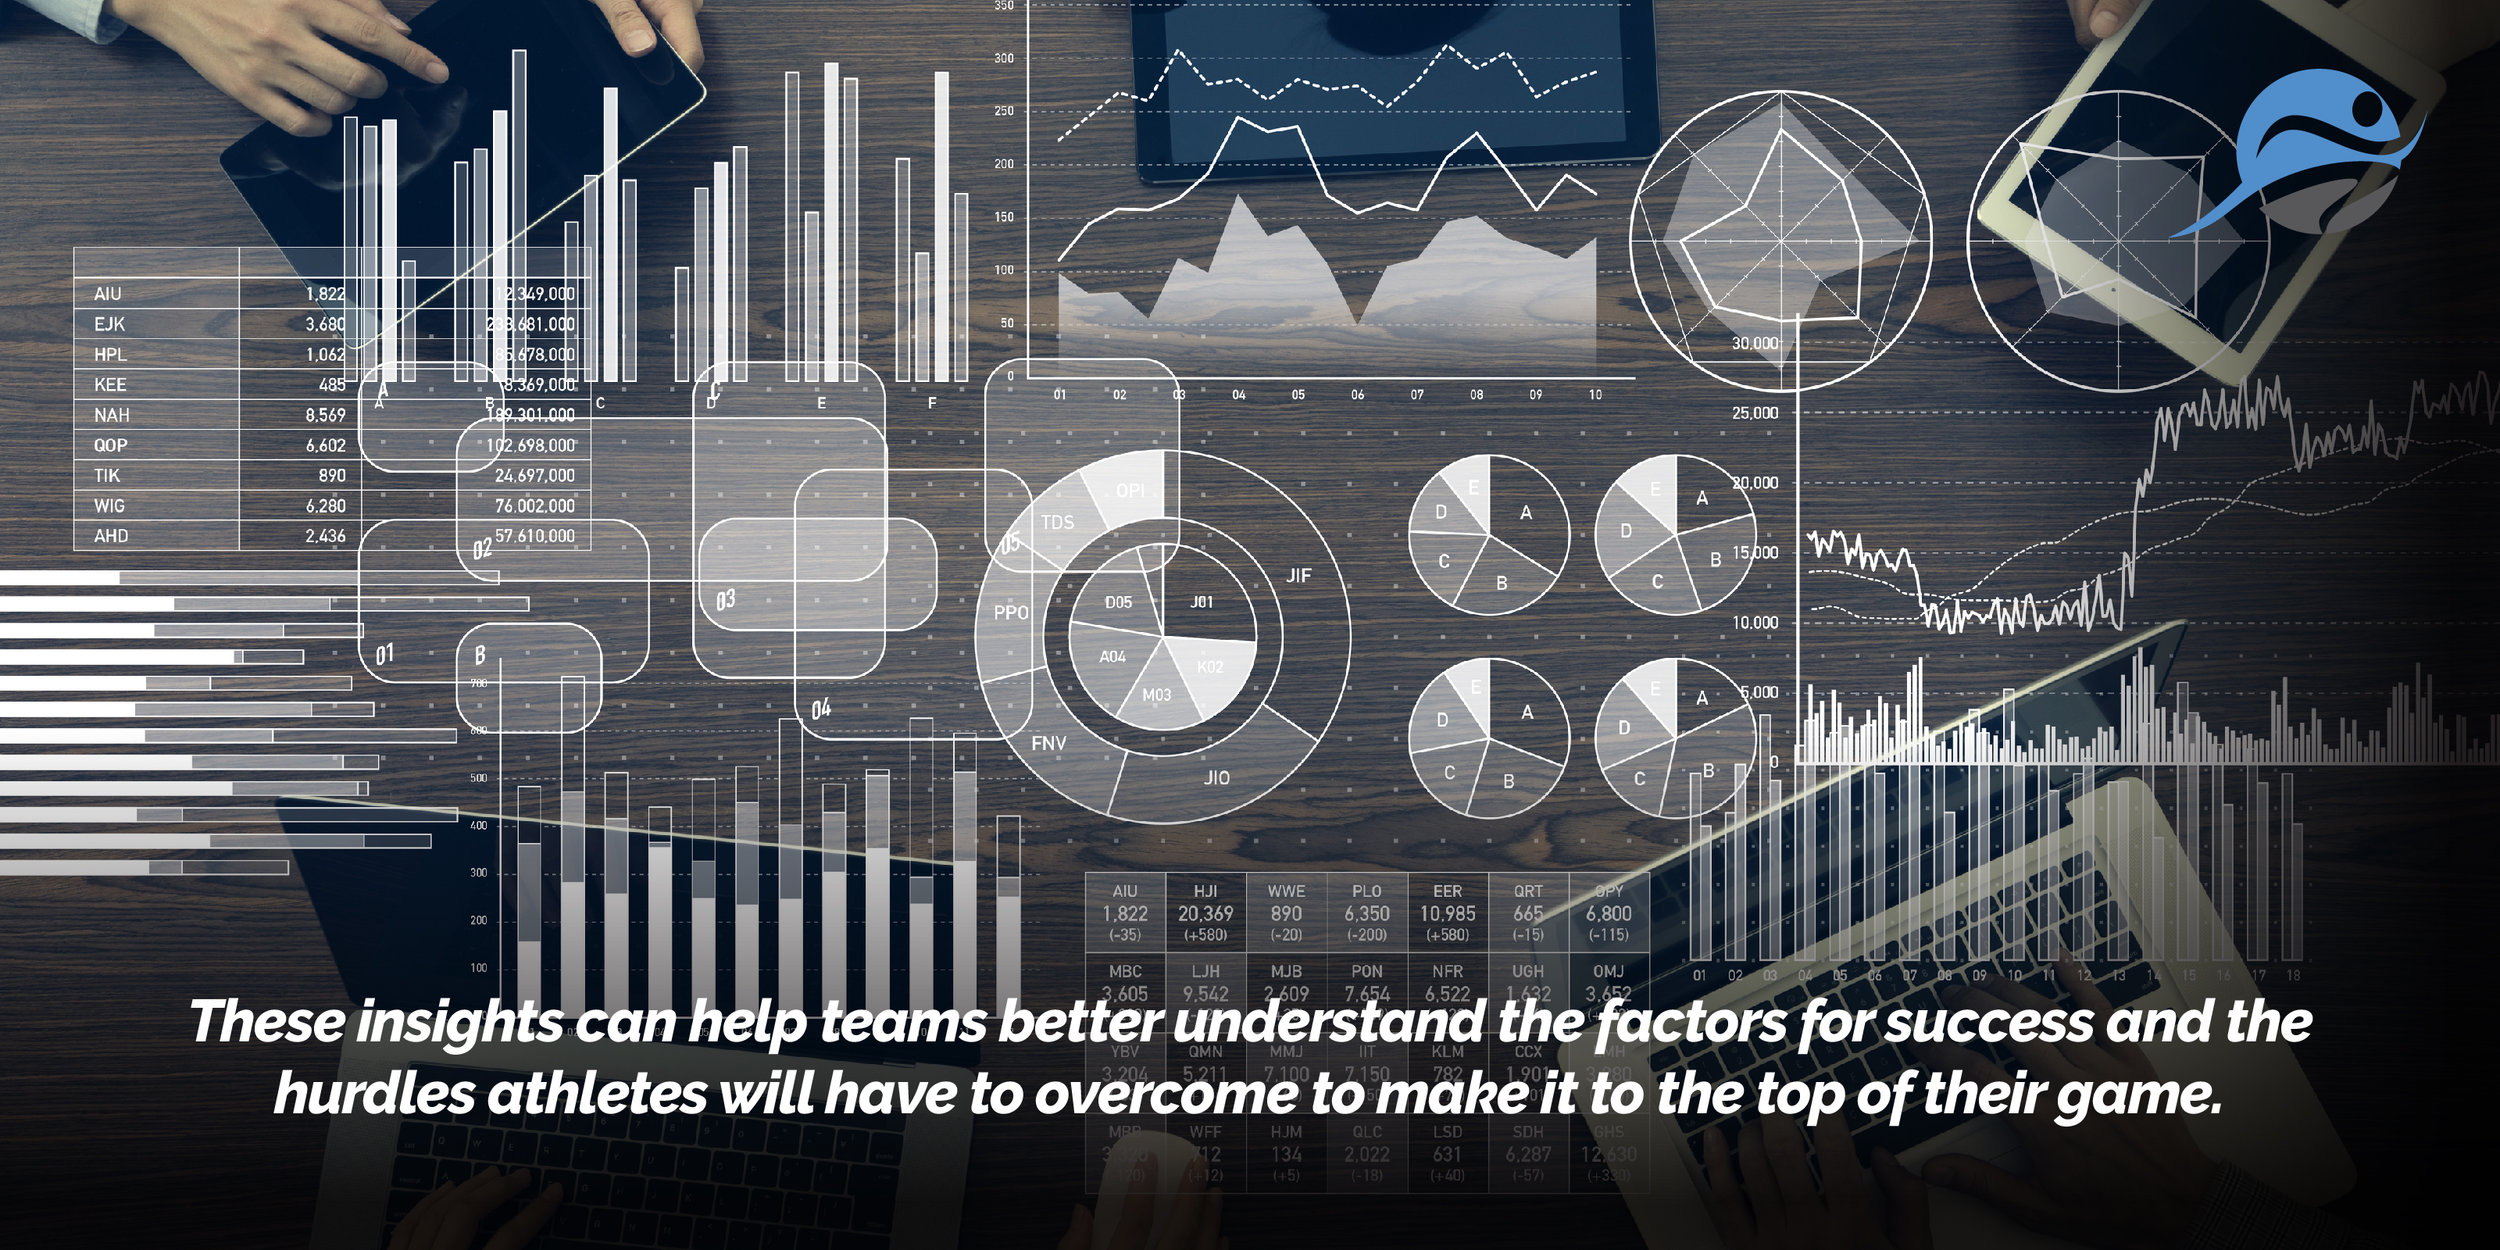 Every day companies, teams, and individuals are coming up with ways to capture more data and record more information about what's happening across the playing fields and courts.